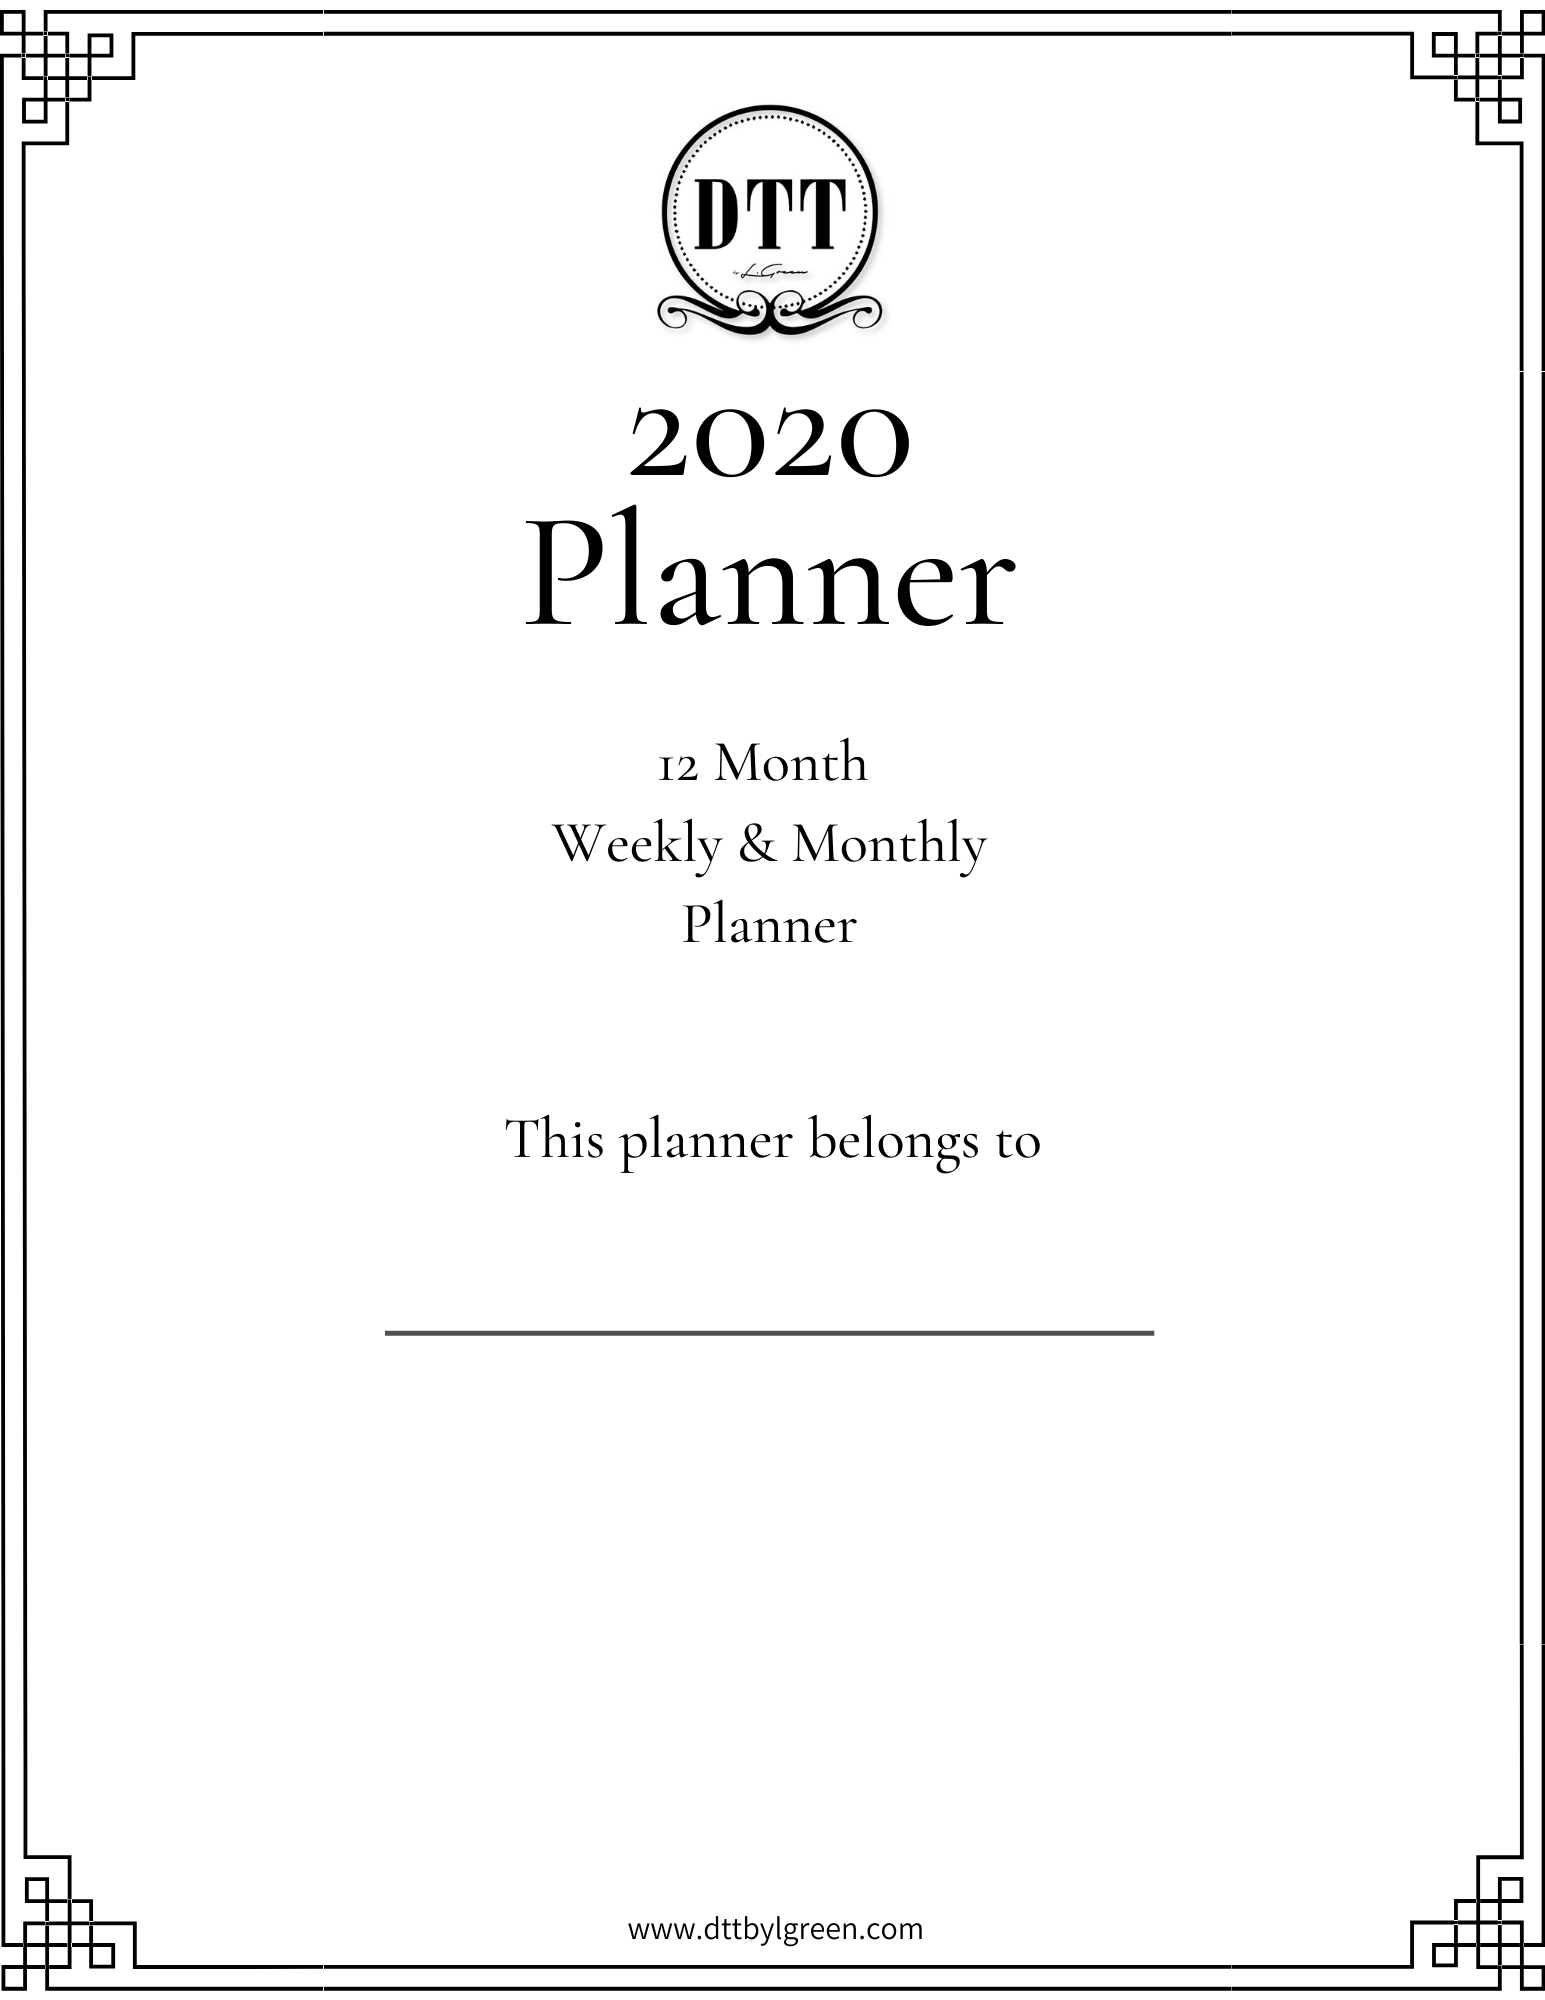 DTT Lifestyle + Beauty 2020 Planner